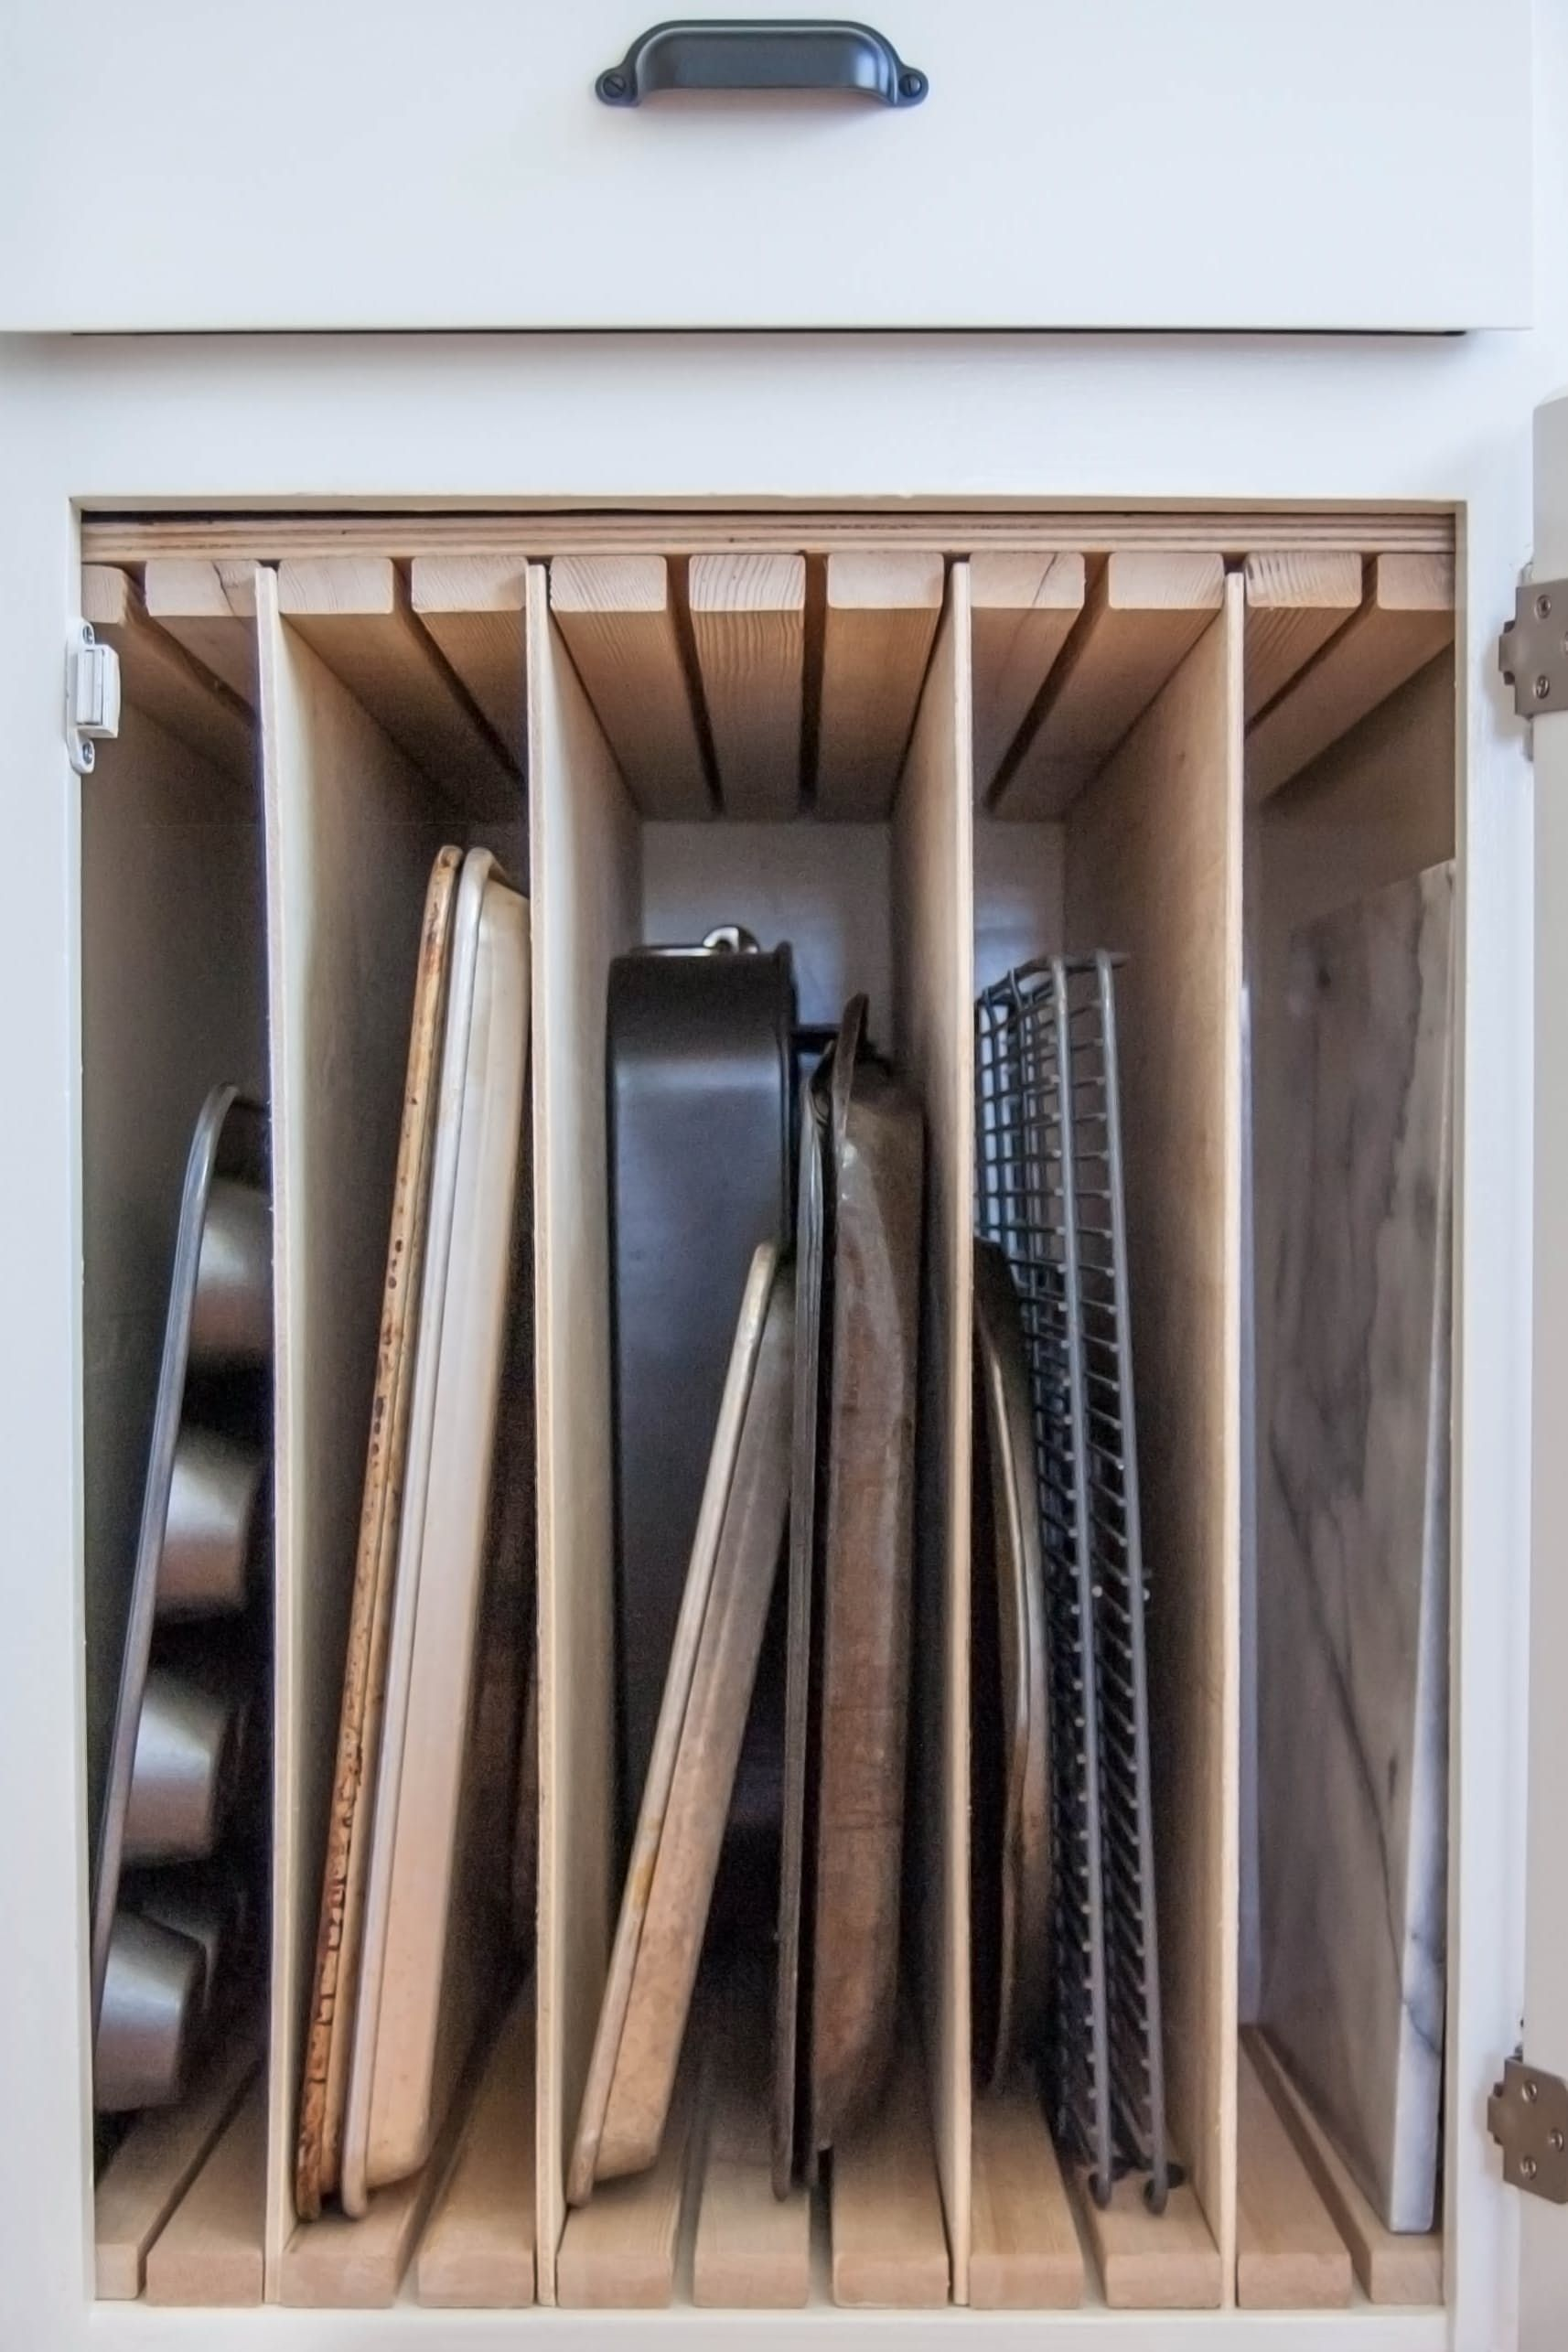 These Cabinet Hacks Seriously Increased My Kitchen Storage | Küche ...